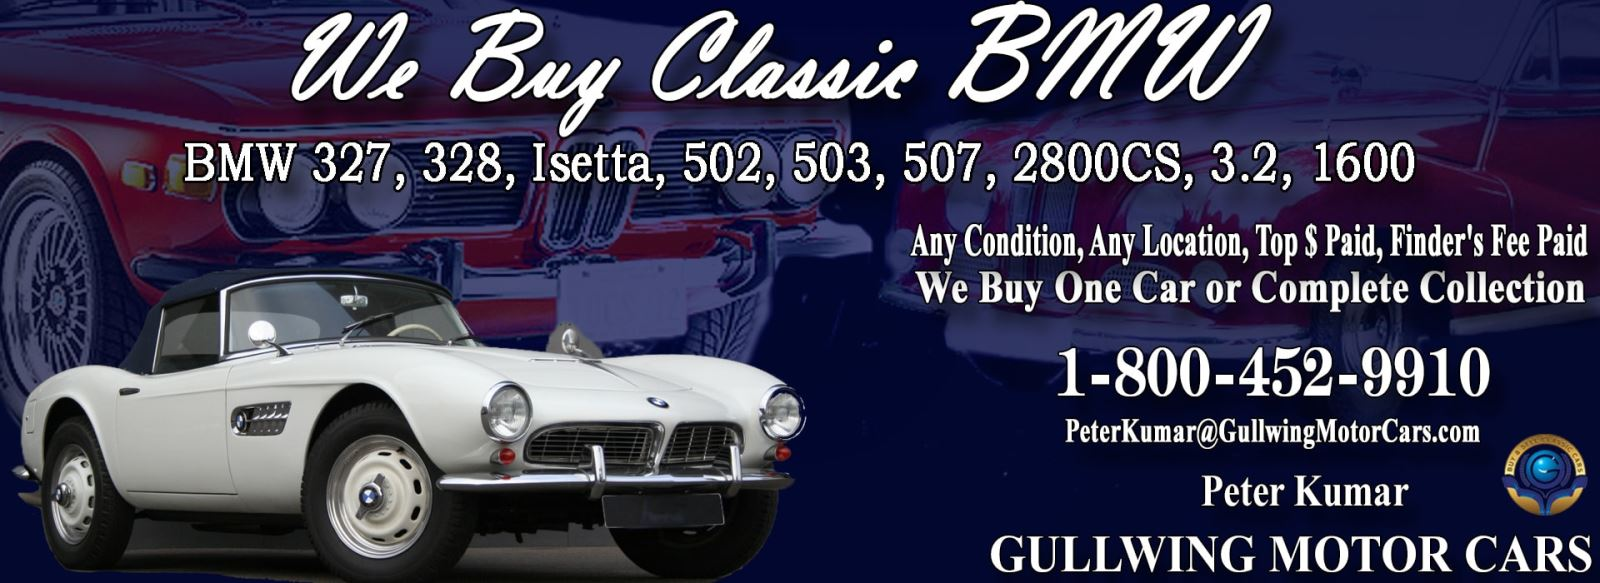 Classic BMW 502 for sale, we buy vintage BMW 502. Call Peter Kumar. Gullwing Motor